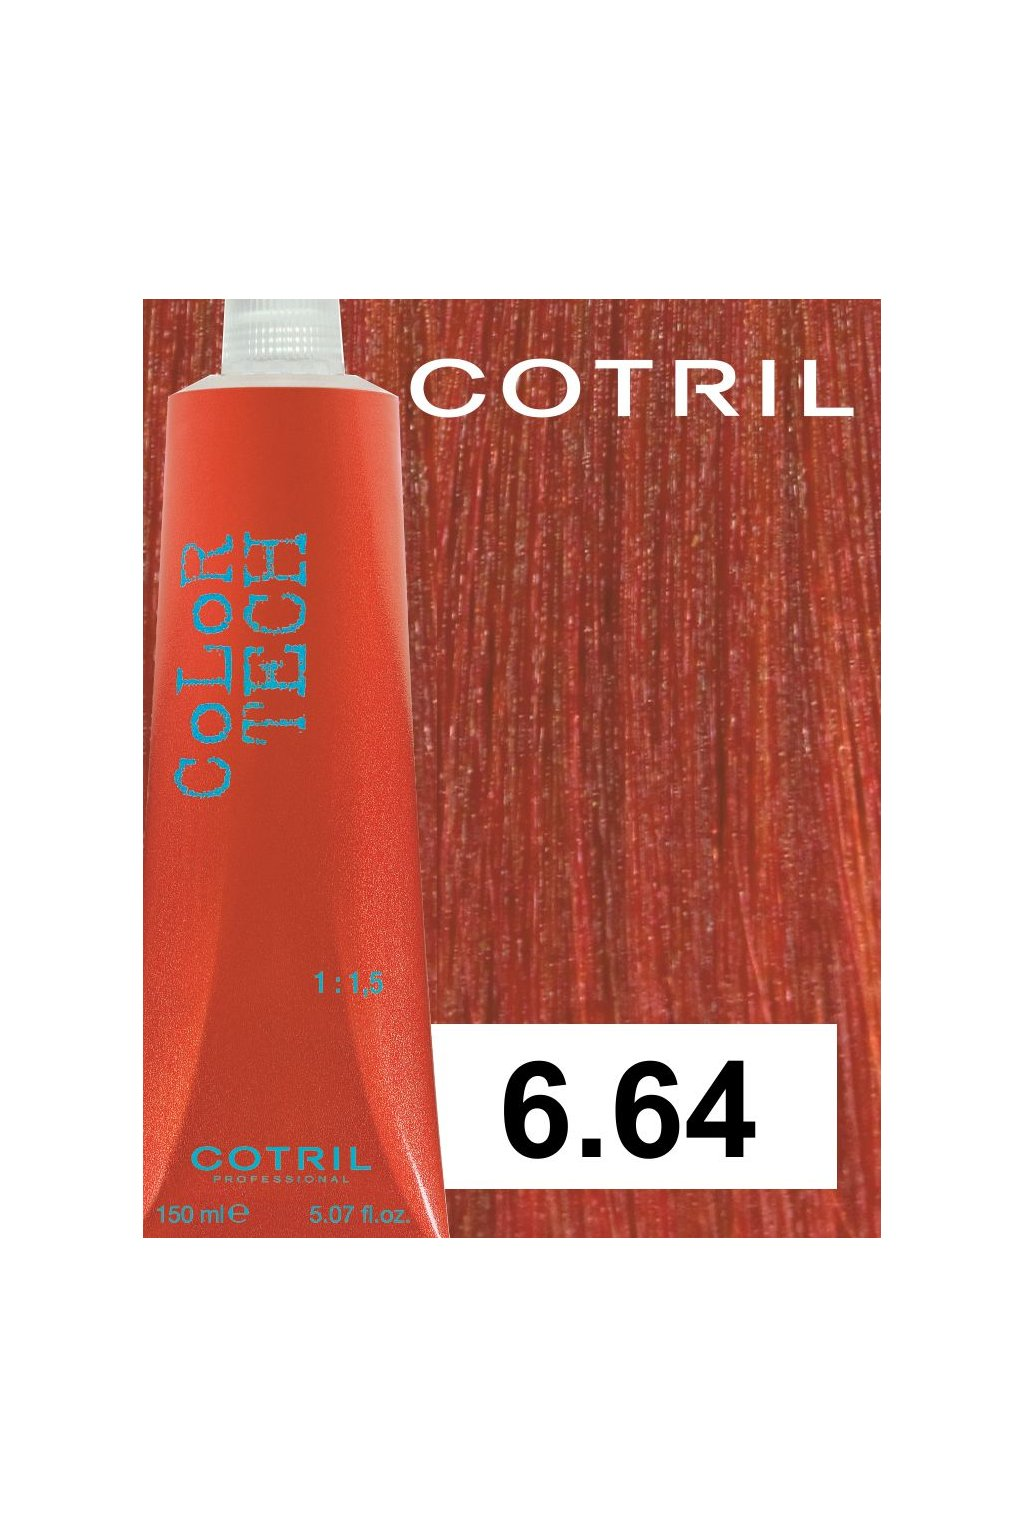 6 64 ct cotril